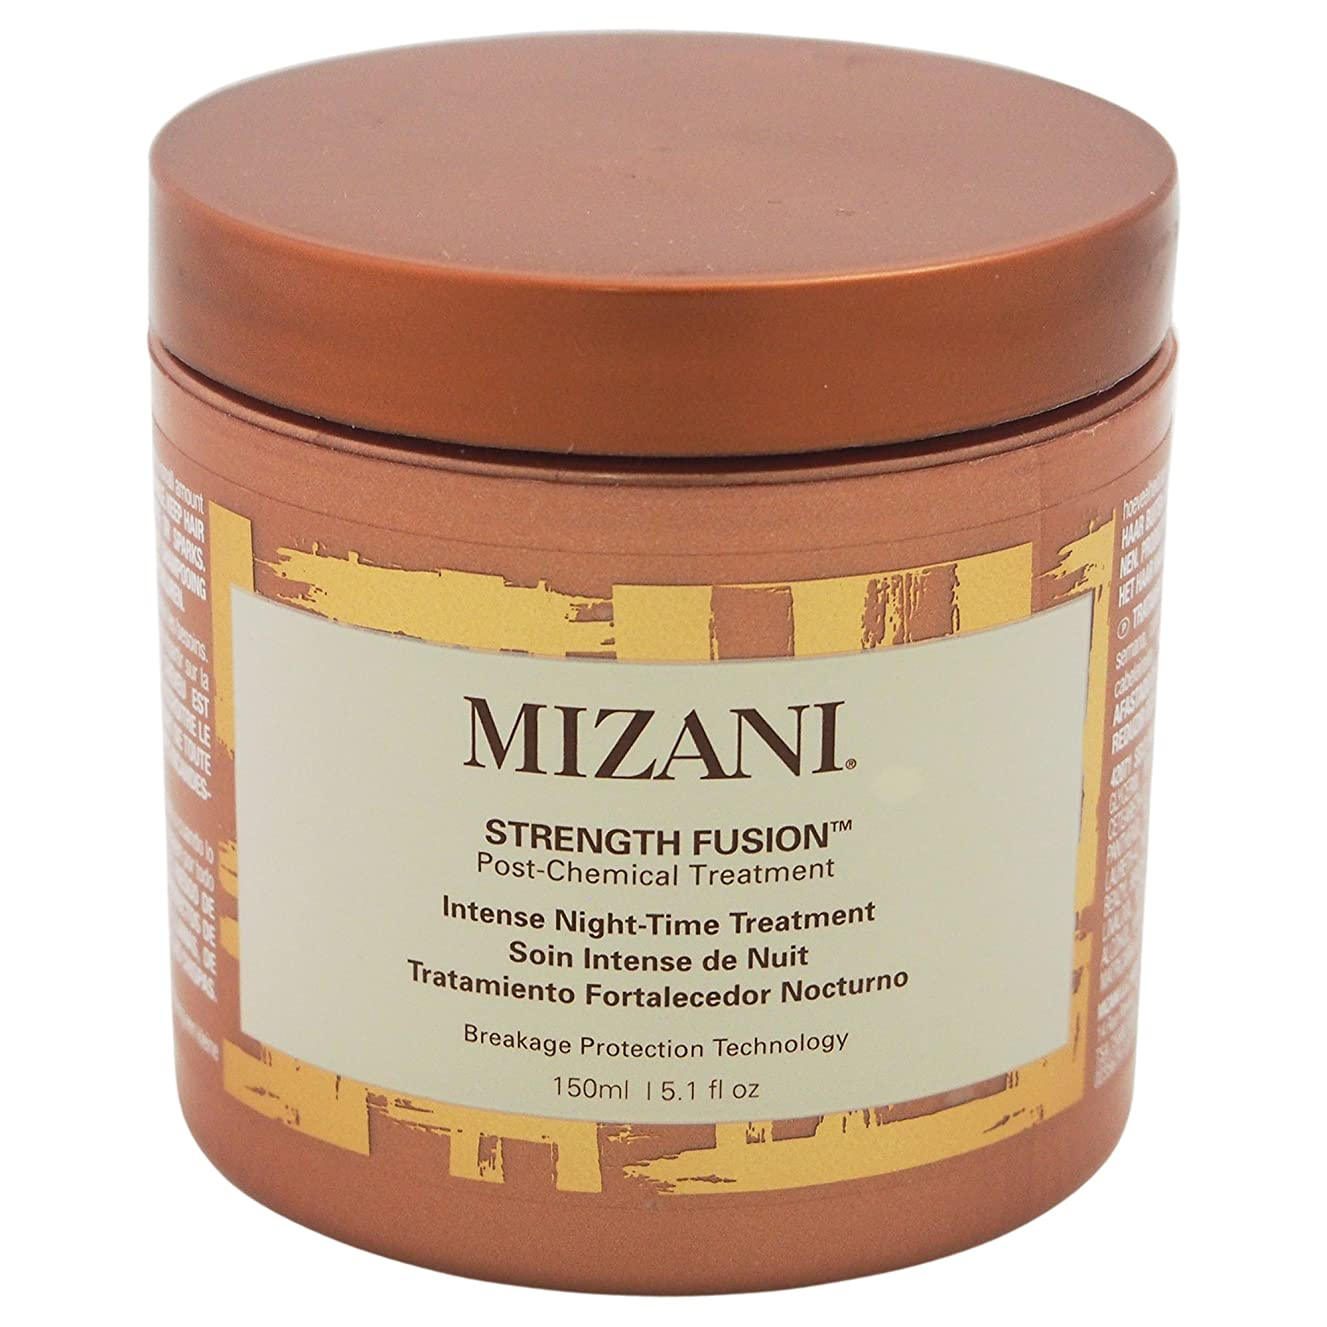 MIZANI Strength Fusion Intense Night-time Treatment, 5.1 Fl Oz